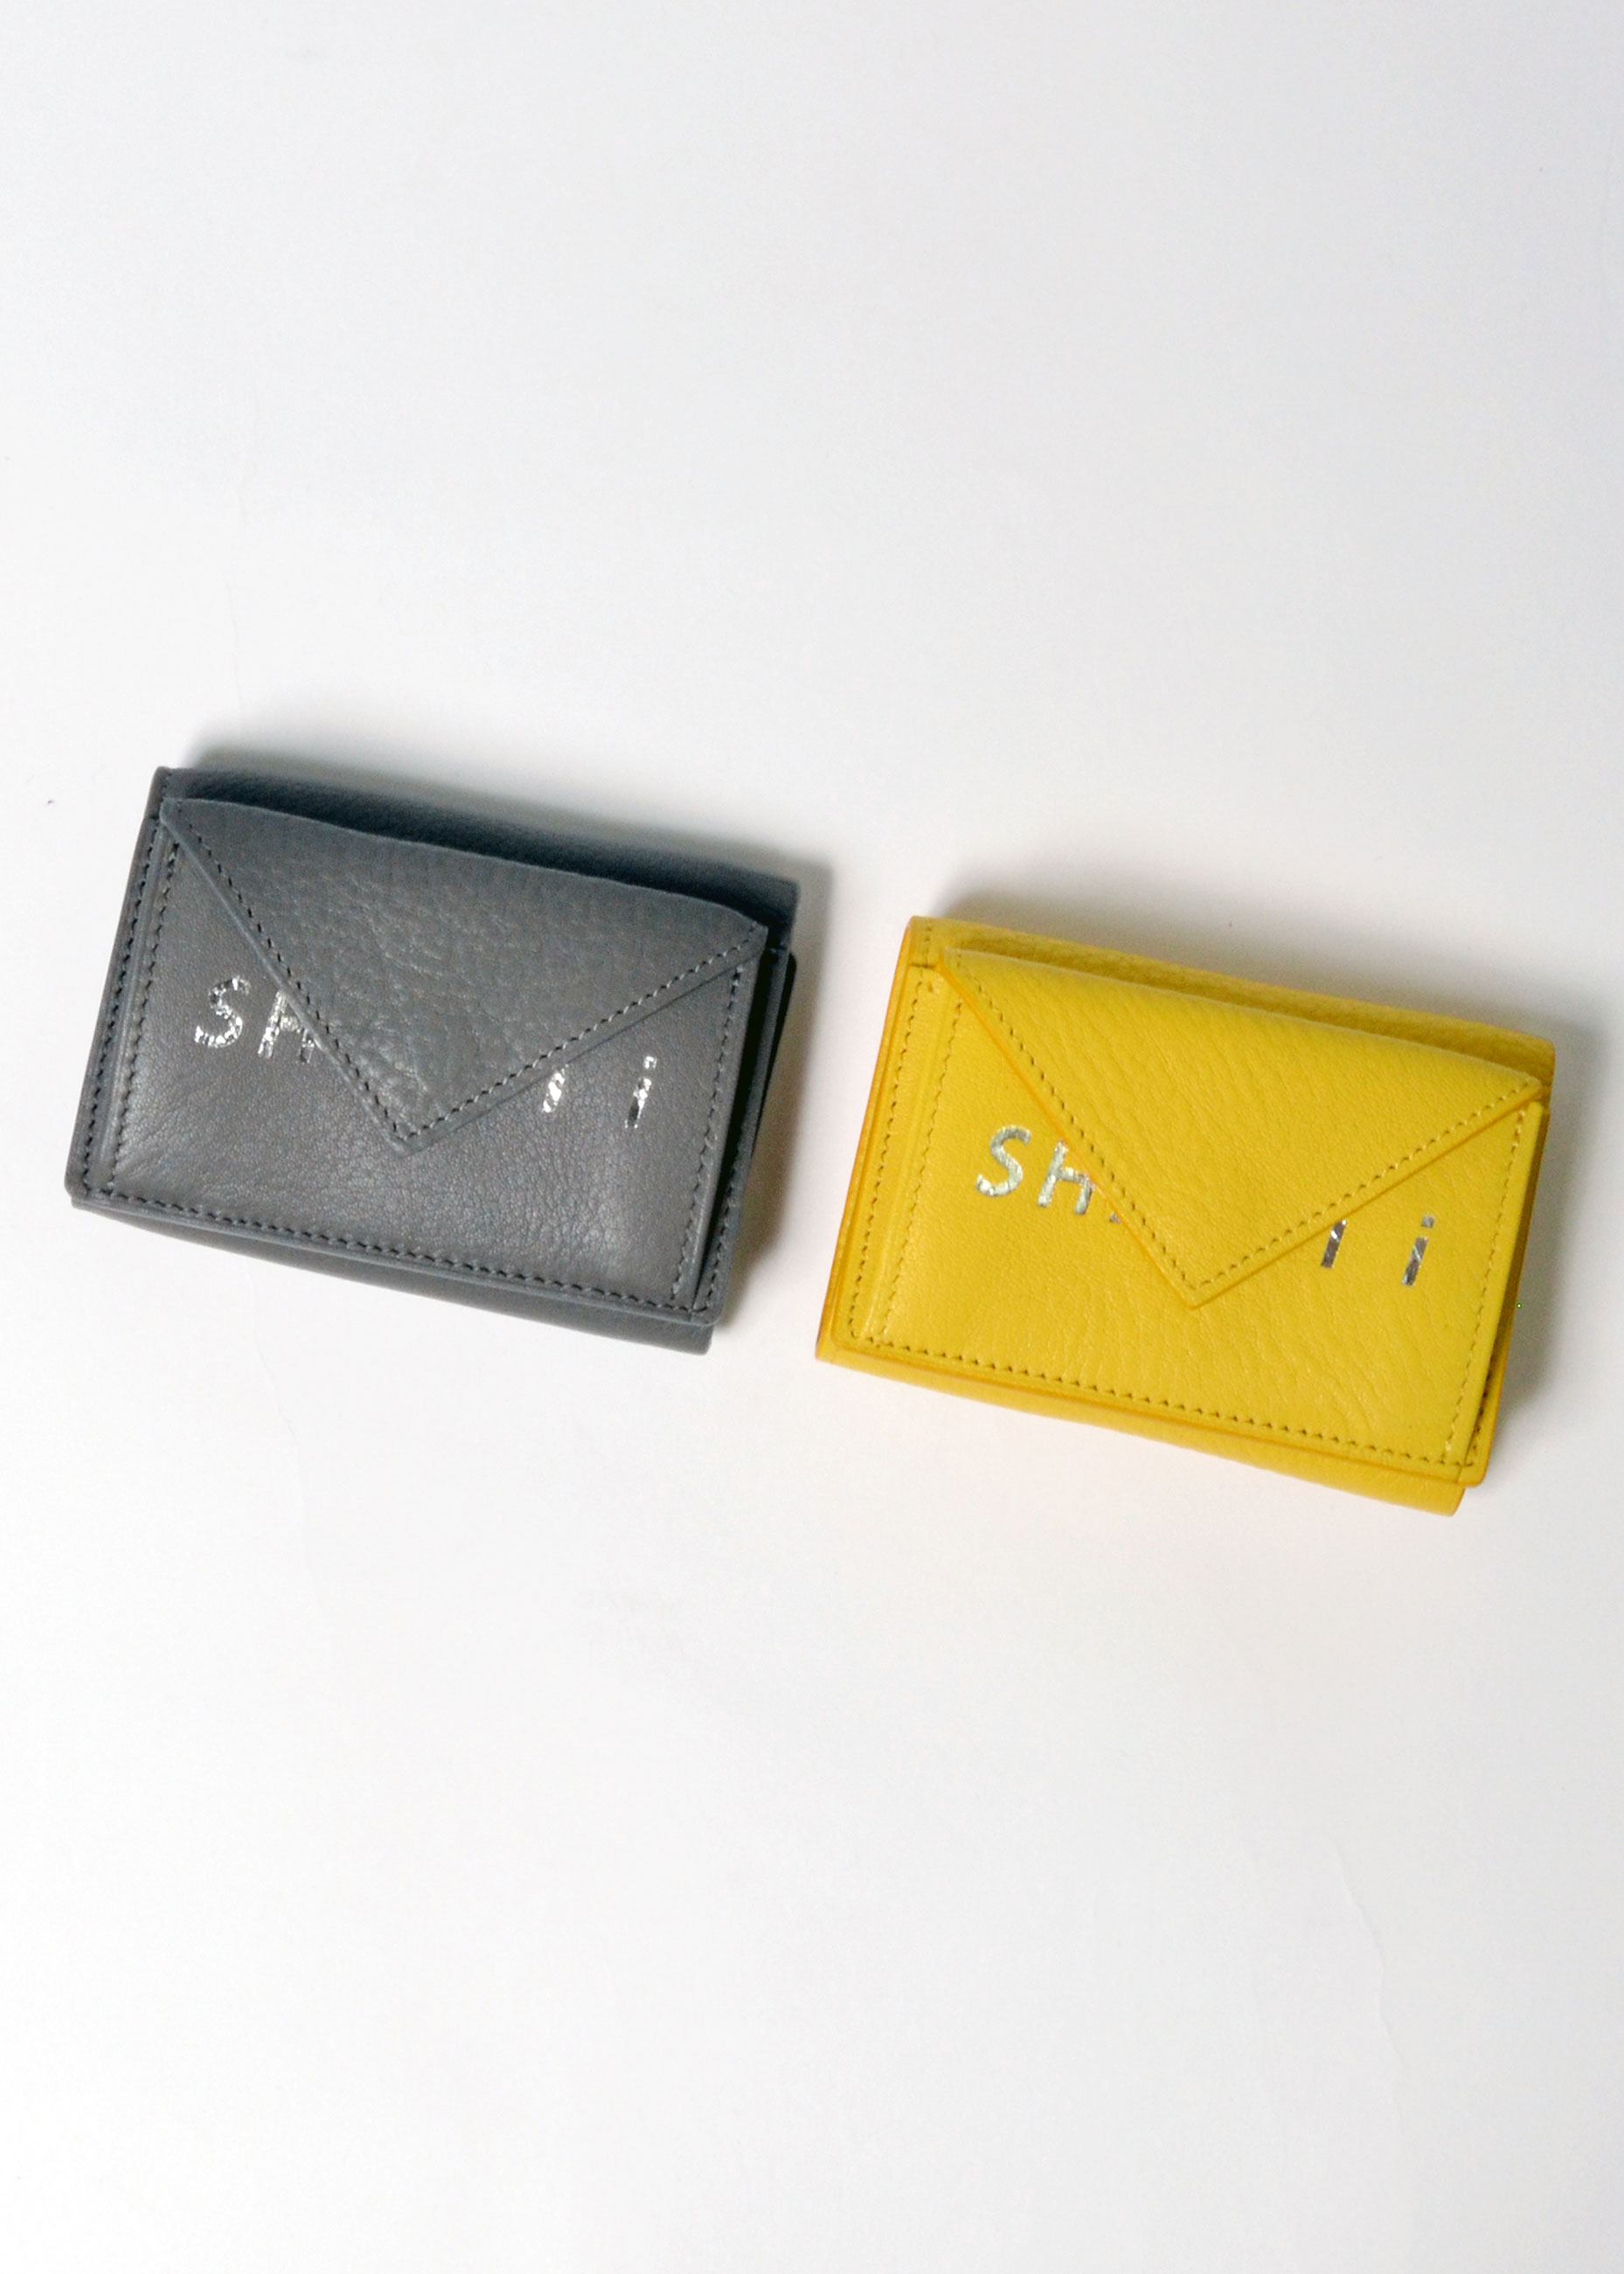 shantii_yellow_grey_wallet